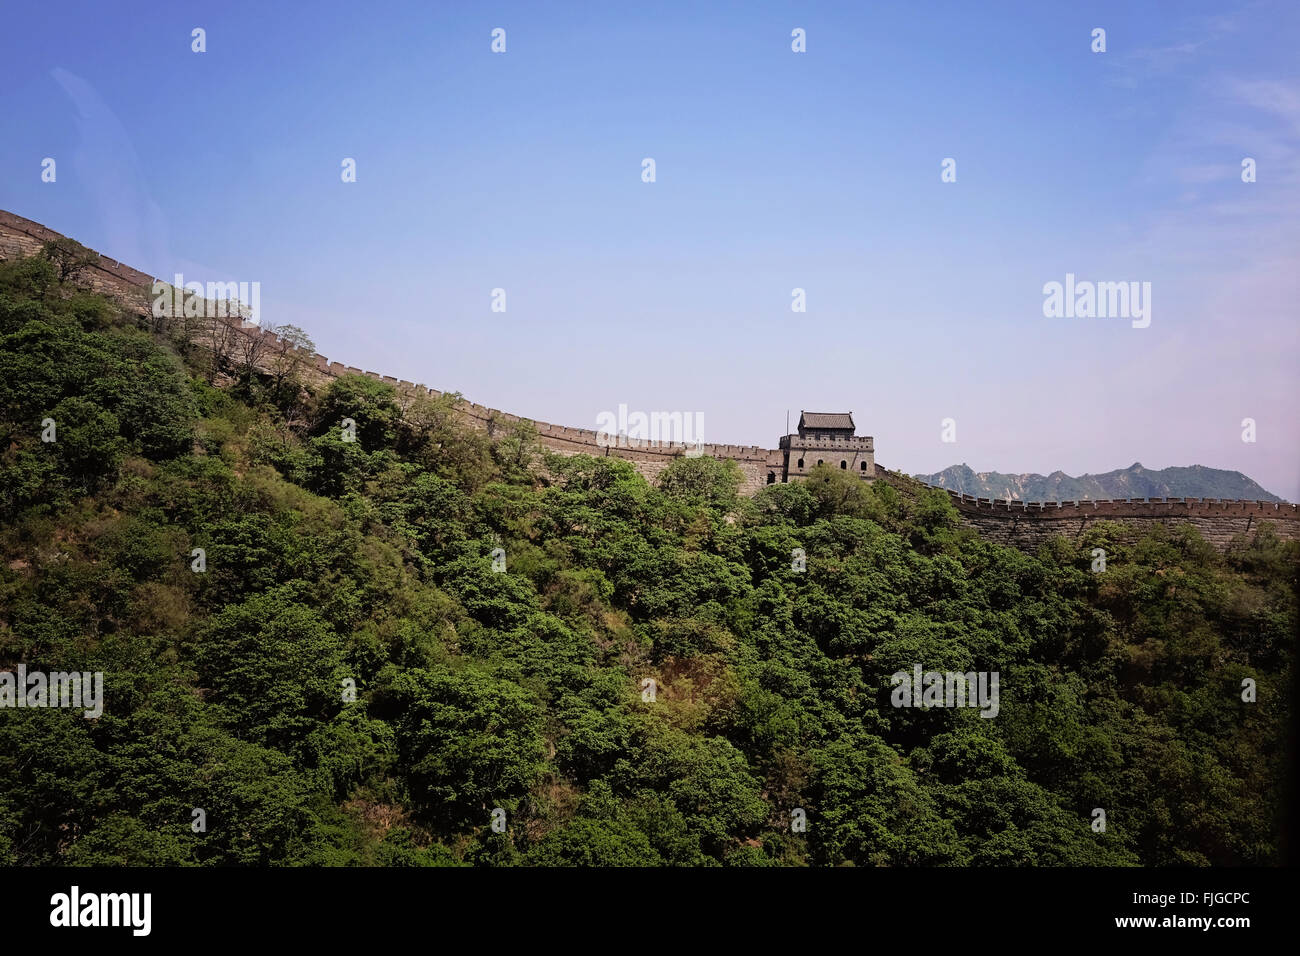 Great Wall of China | Seitenansicht Grosse Mauer von China - Stock Image